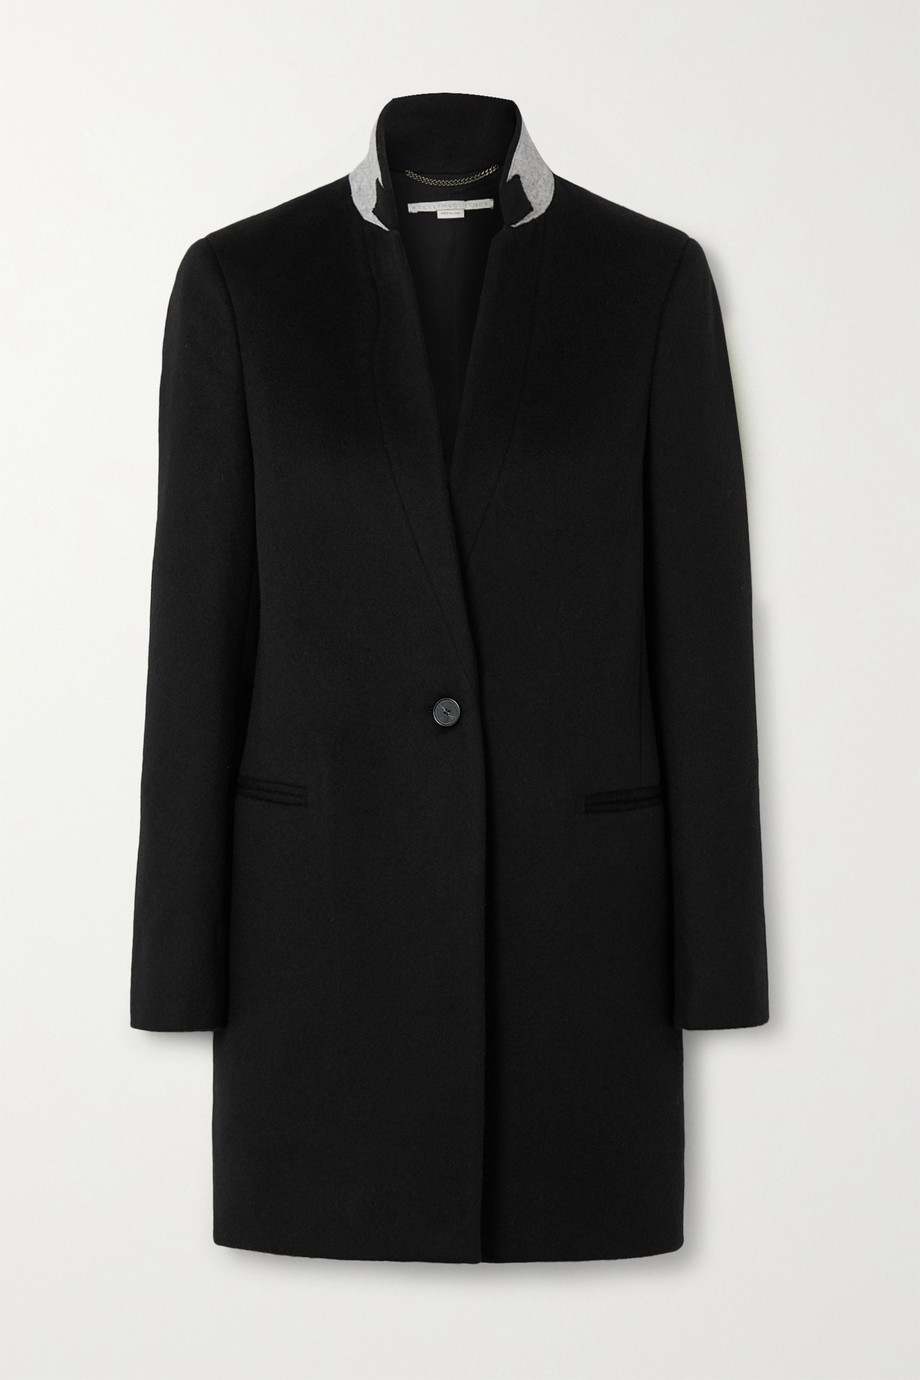 Stella McCartney Wool-felt coat